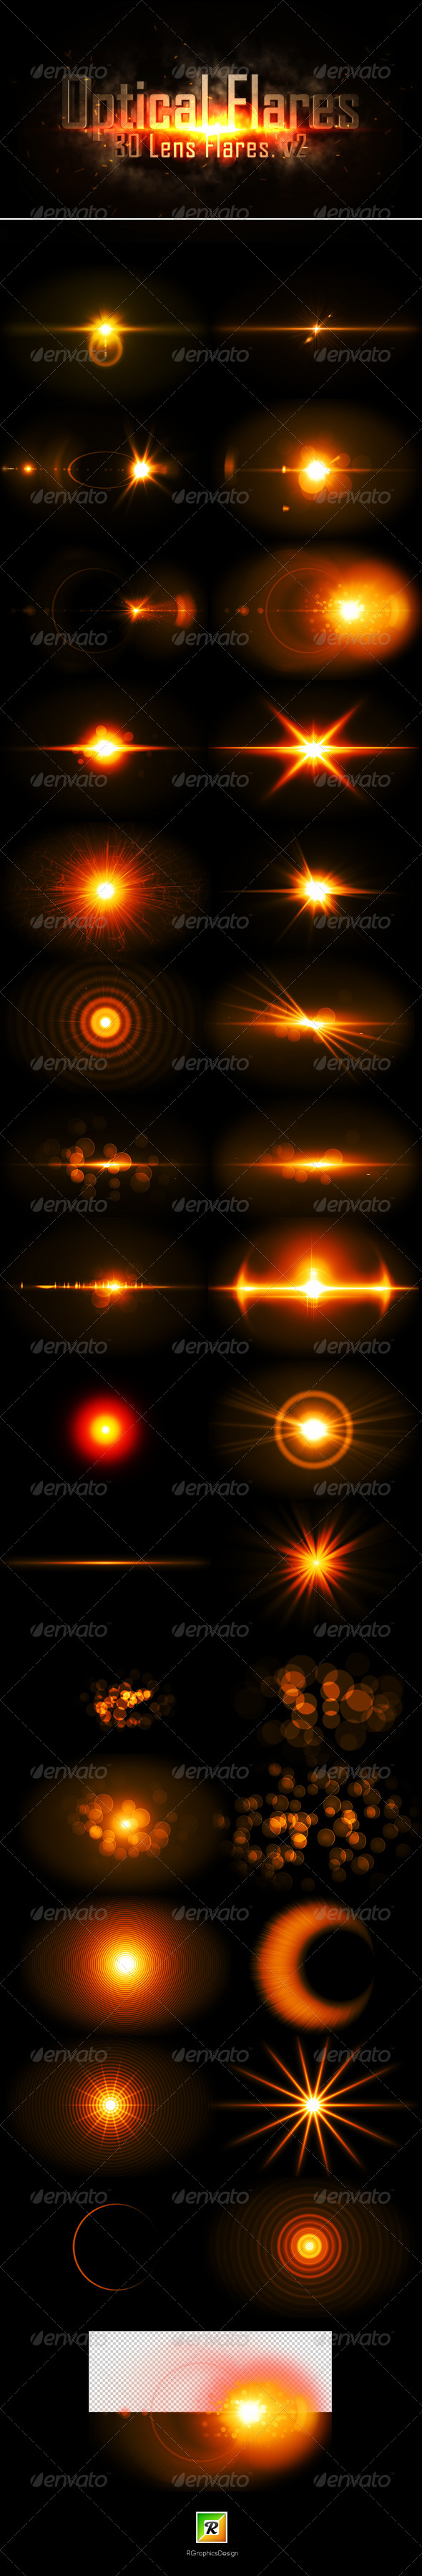 Optical Flares - 30 Lens flares .v2 GraphicRiver